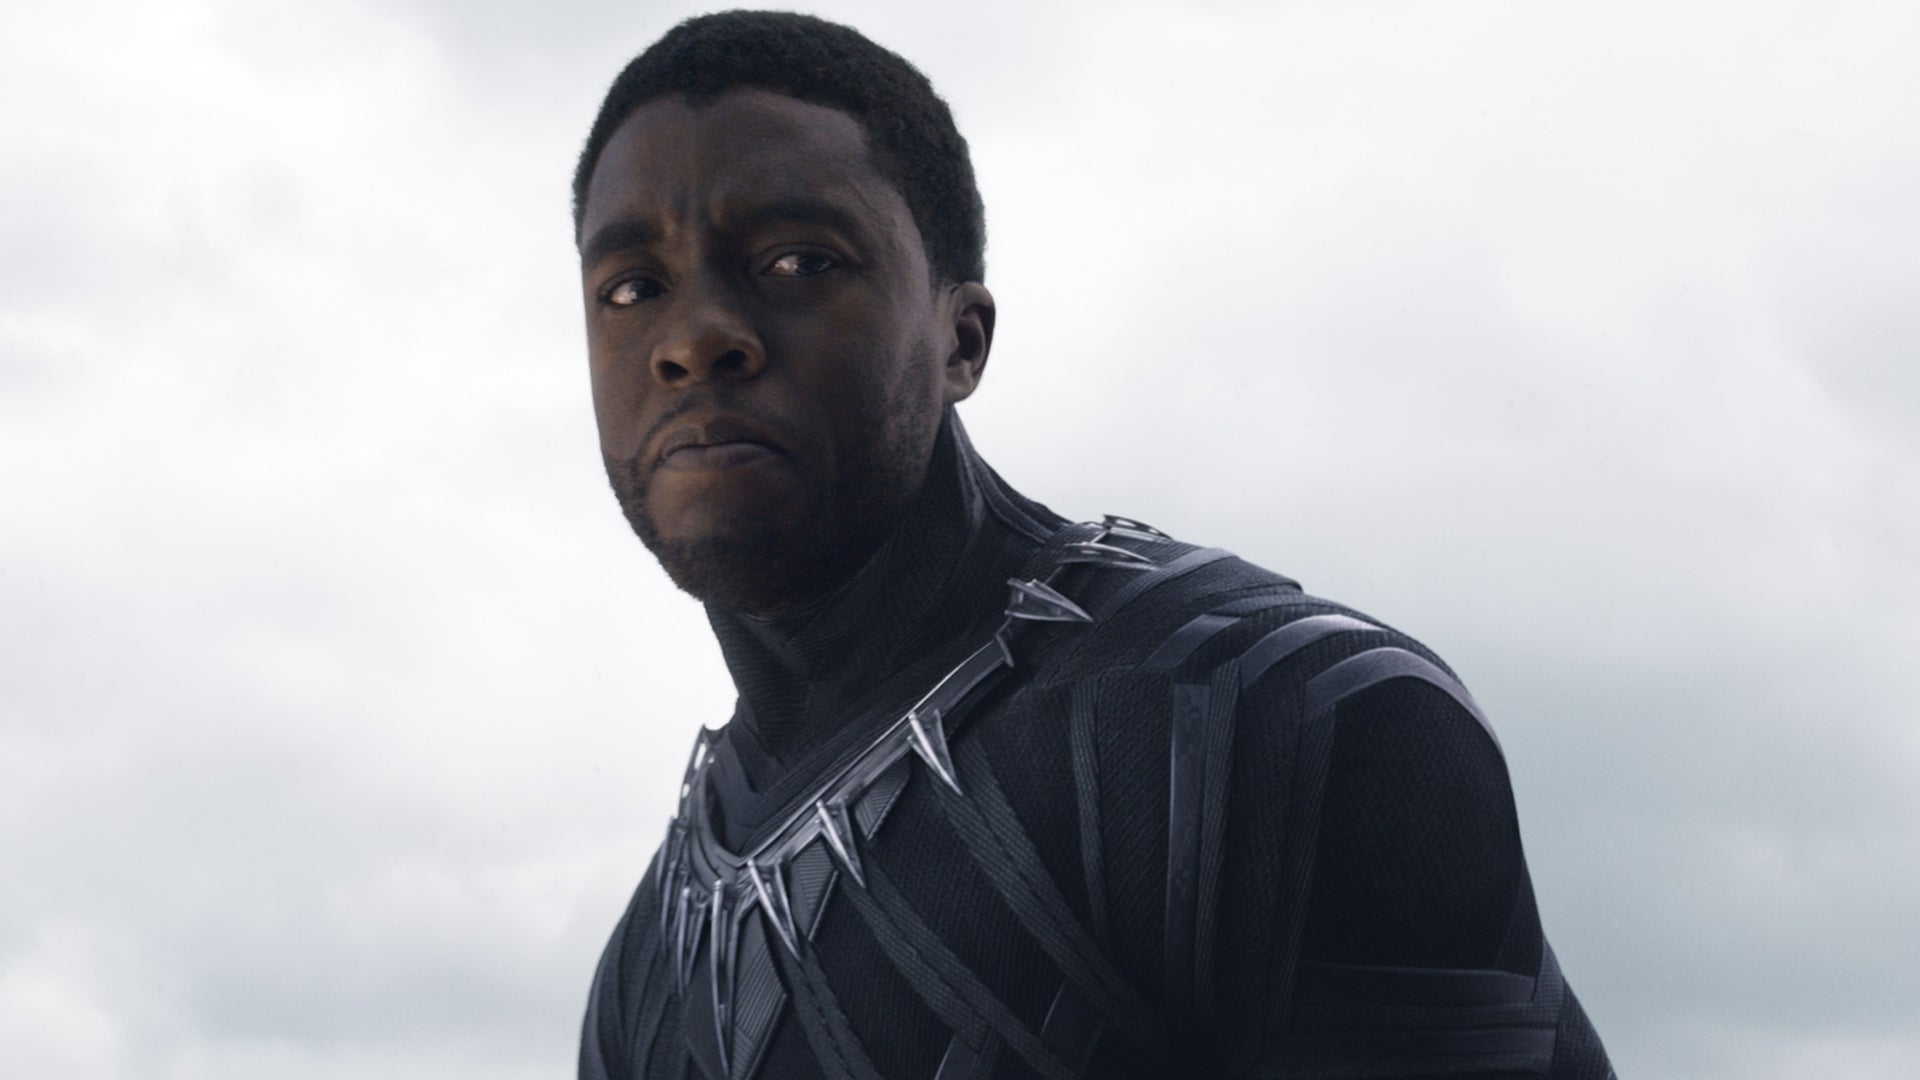 This Petition Wants Marvel To Invest A Portion Of 'Black Panther' Profits In Black Communities